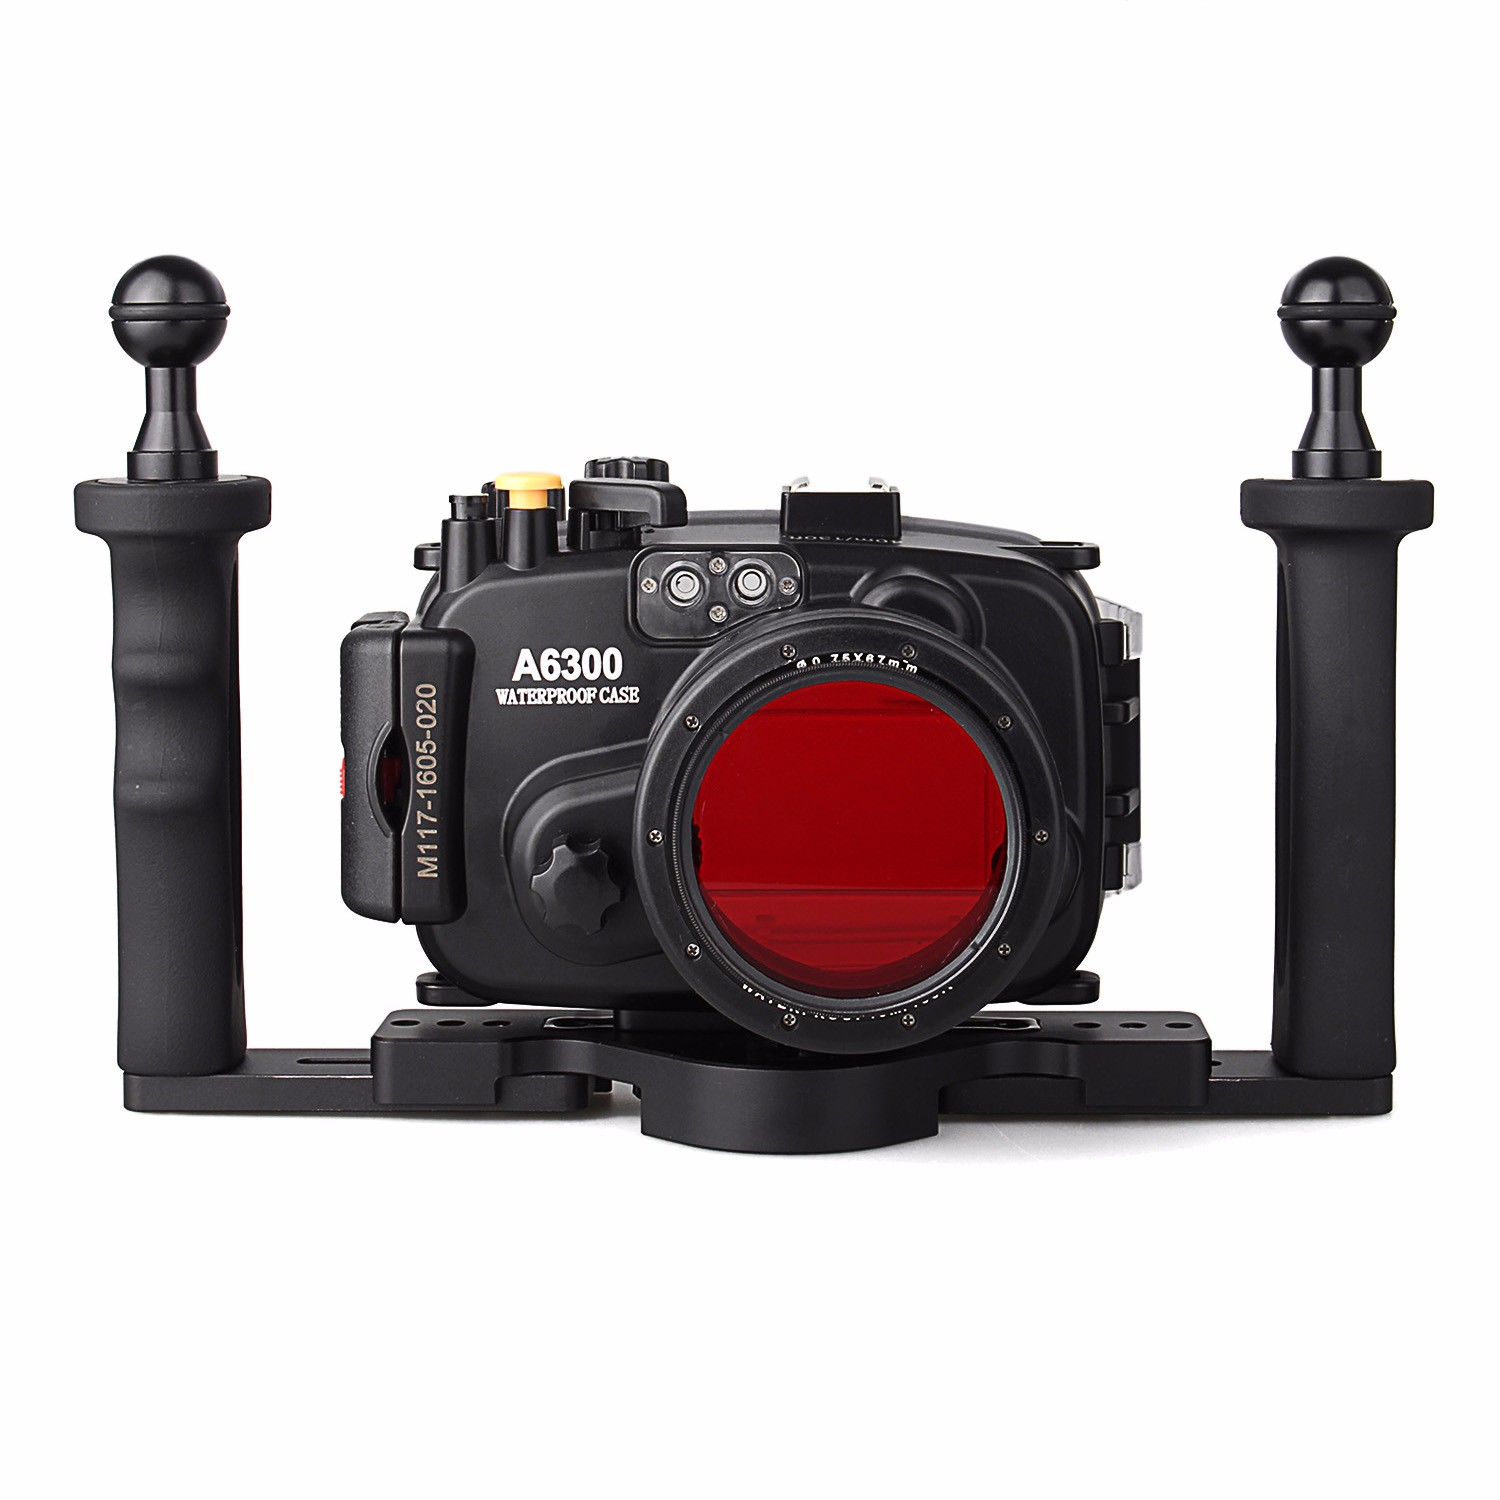 Meikon 40m 130ft Waterproof Underwater Camera Housing Case for A6300 16 50mm Lens Two Hands Aluminium